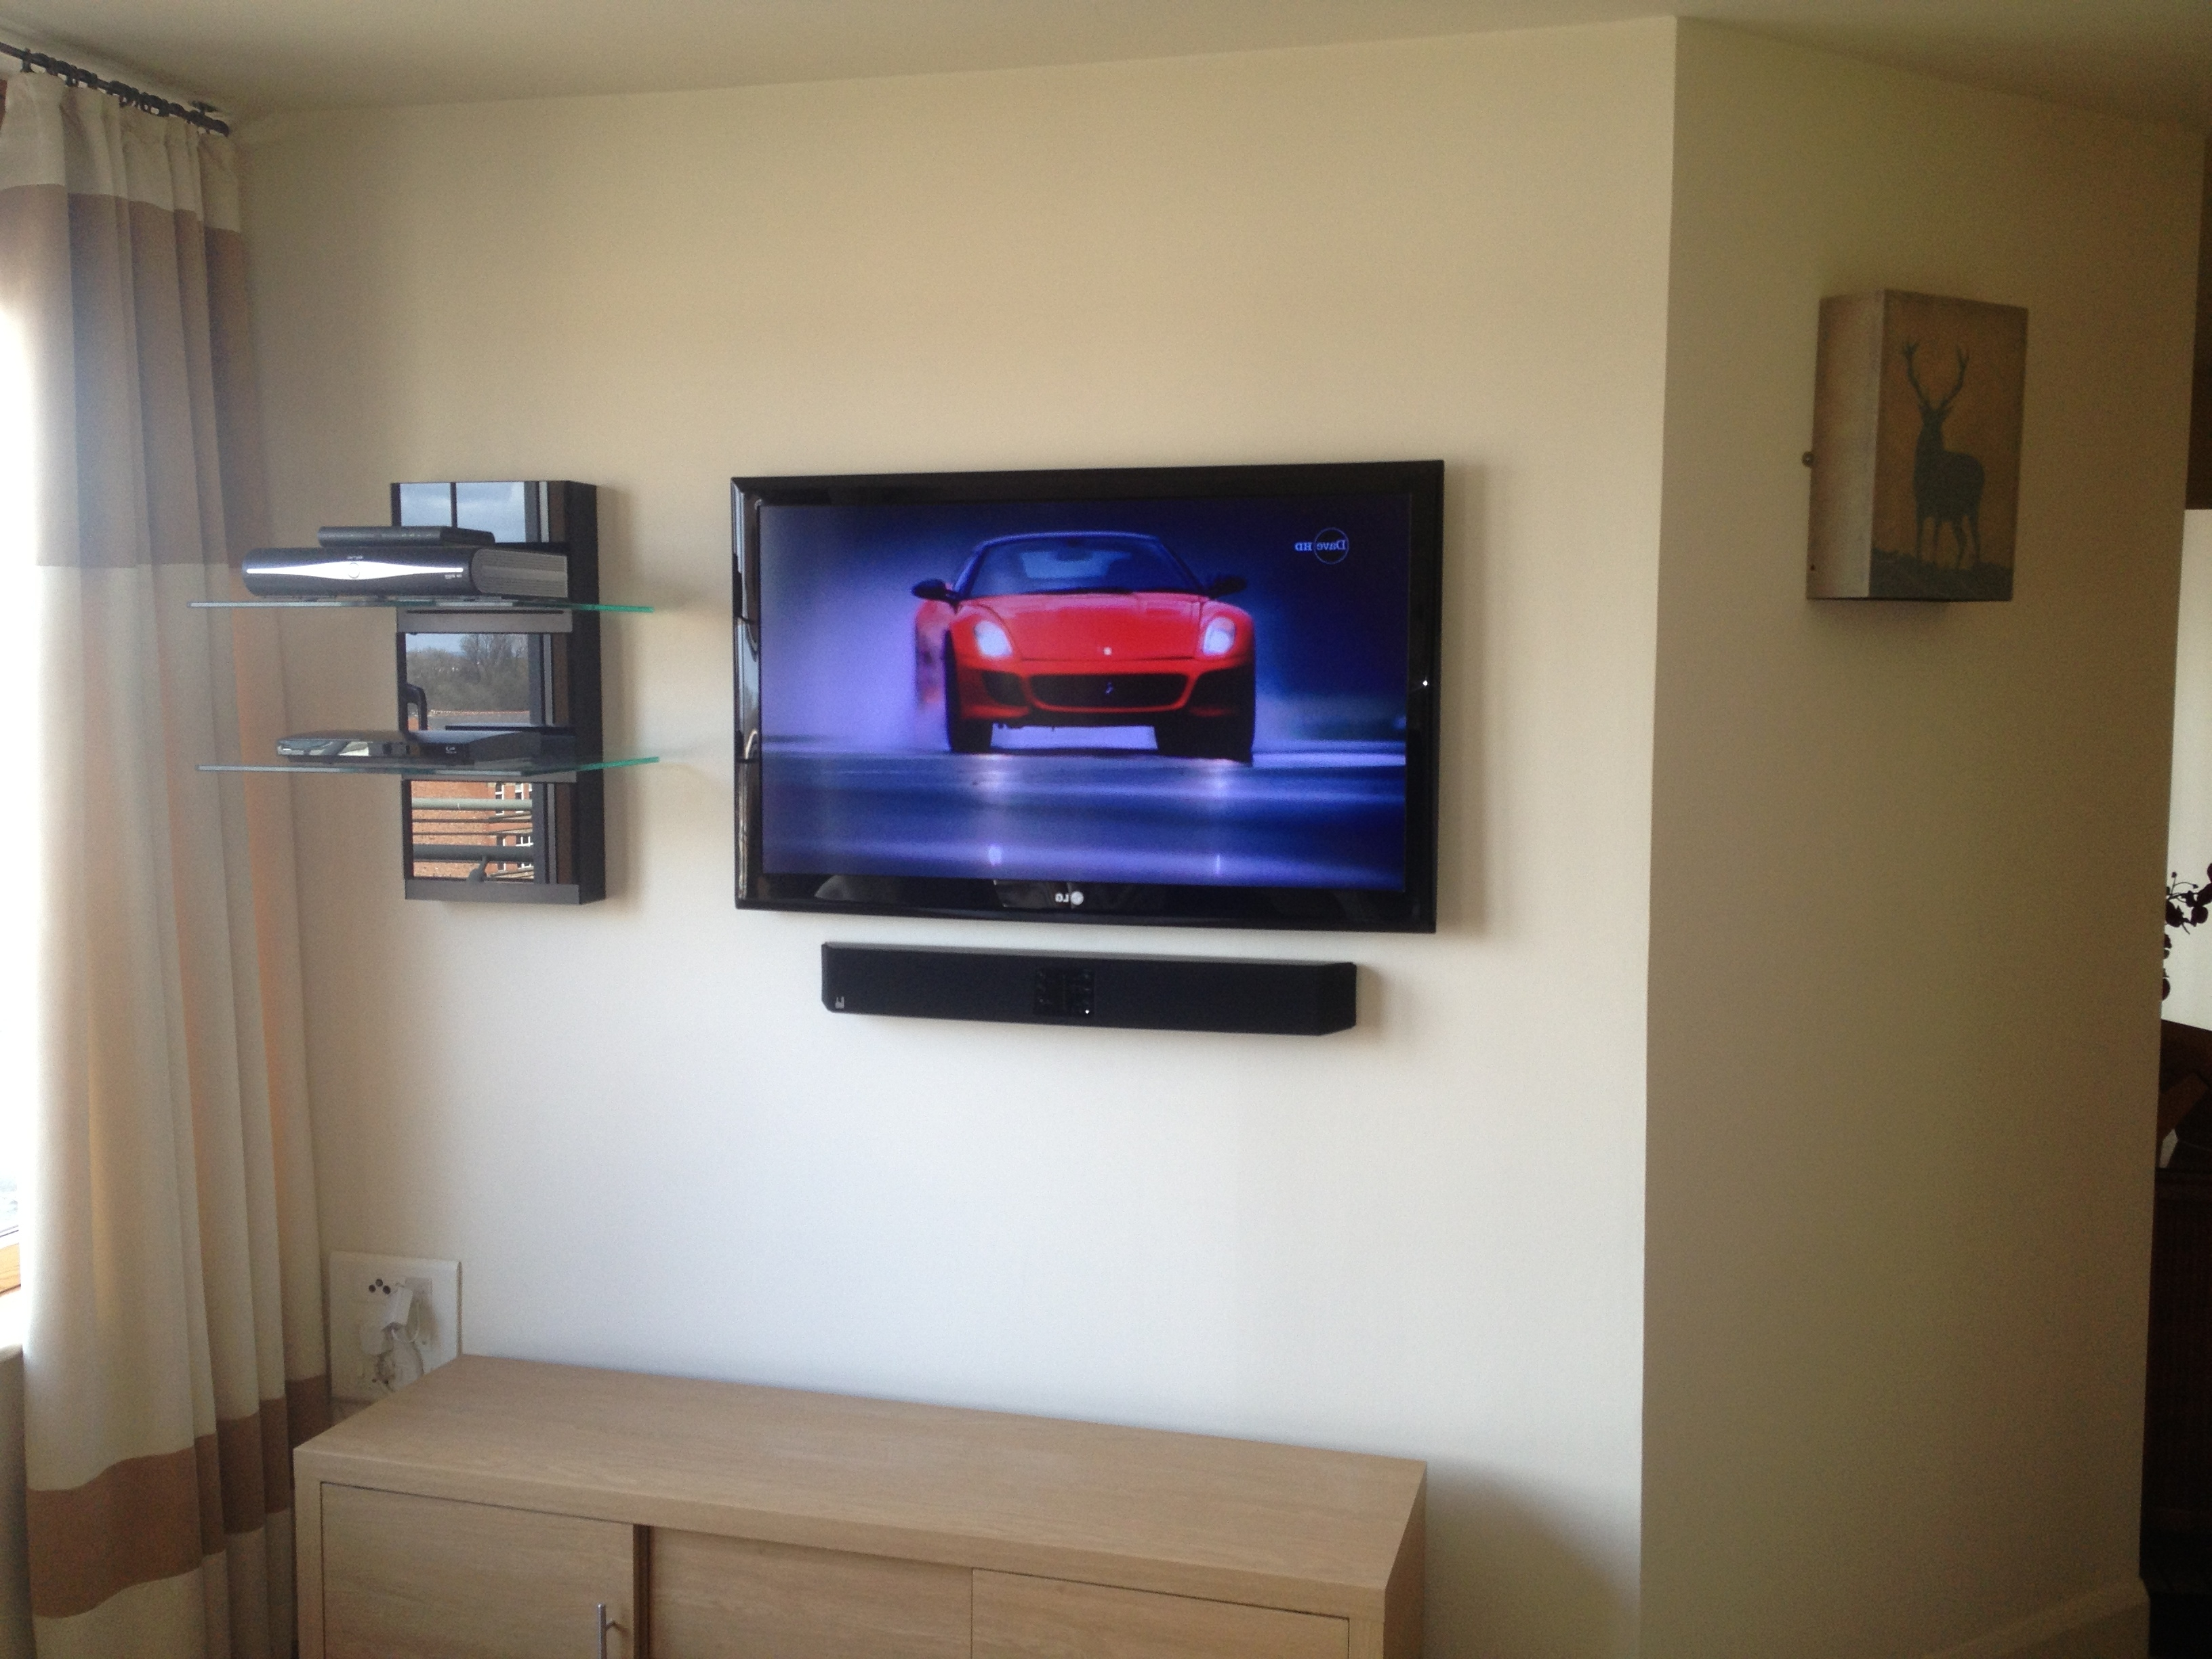 Most Recently Released Flat Screen Shelving Throughout Flat Screen Tv Installation With Soundbar And Floating Av Shelves (View 8 of 15)